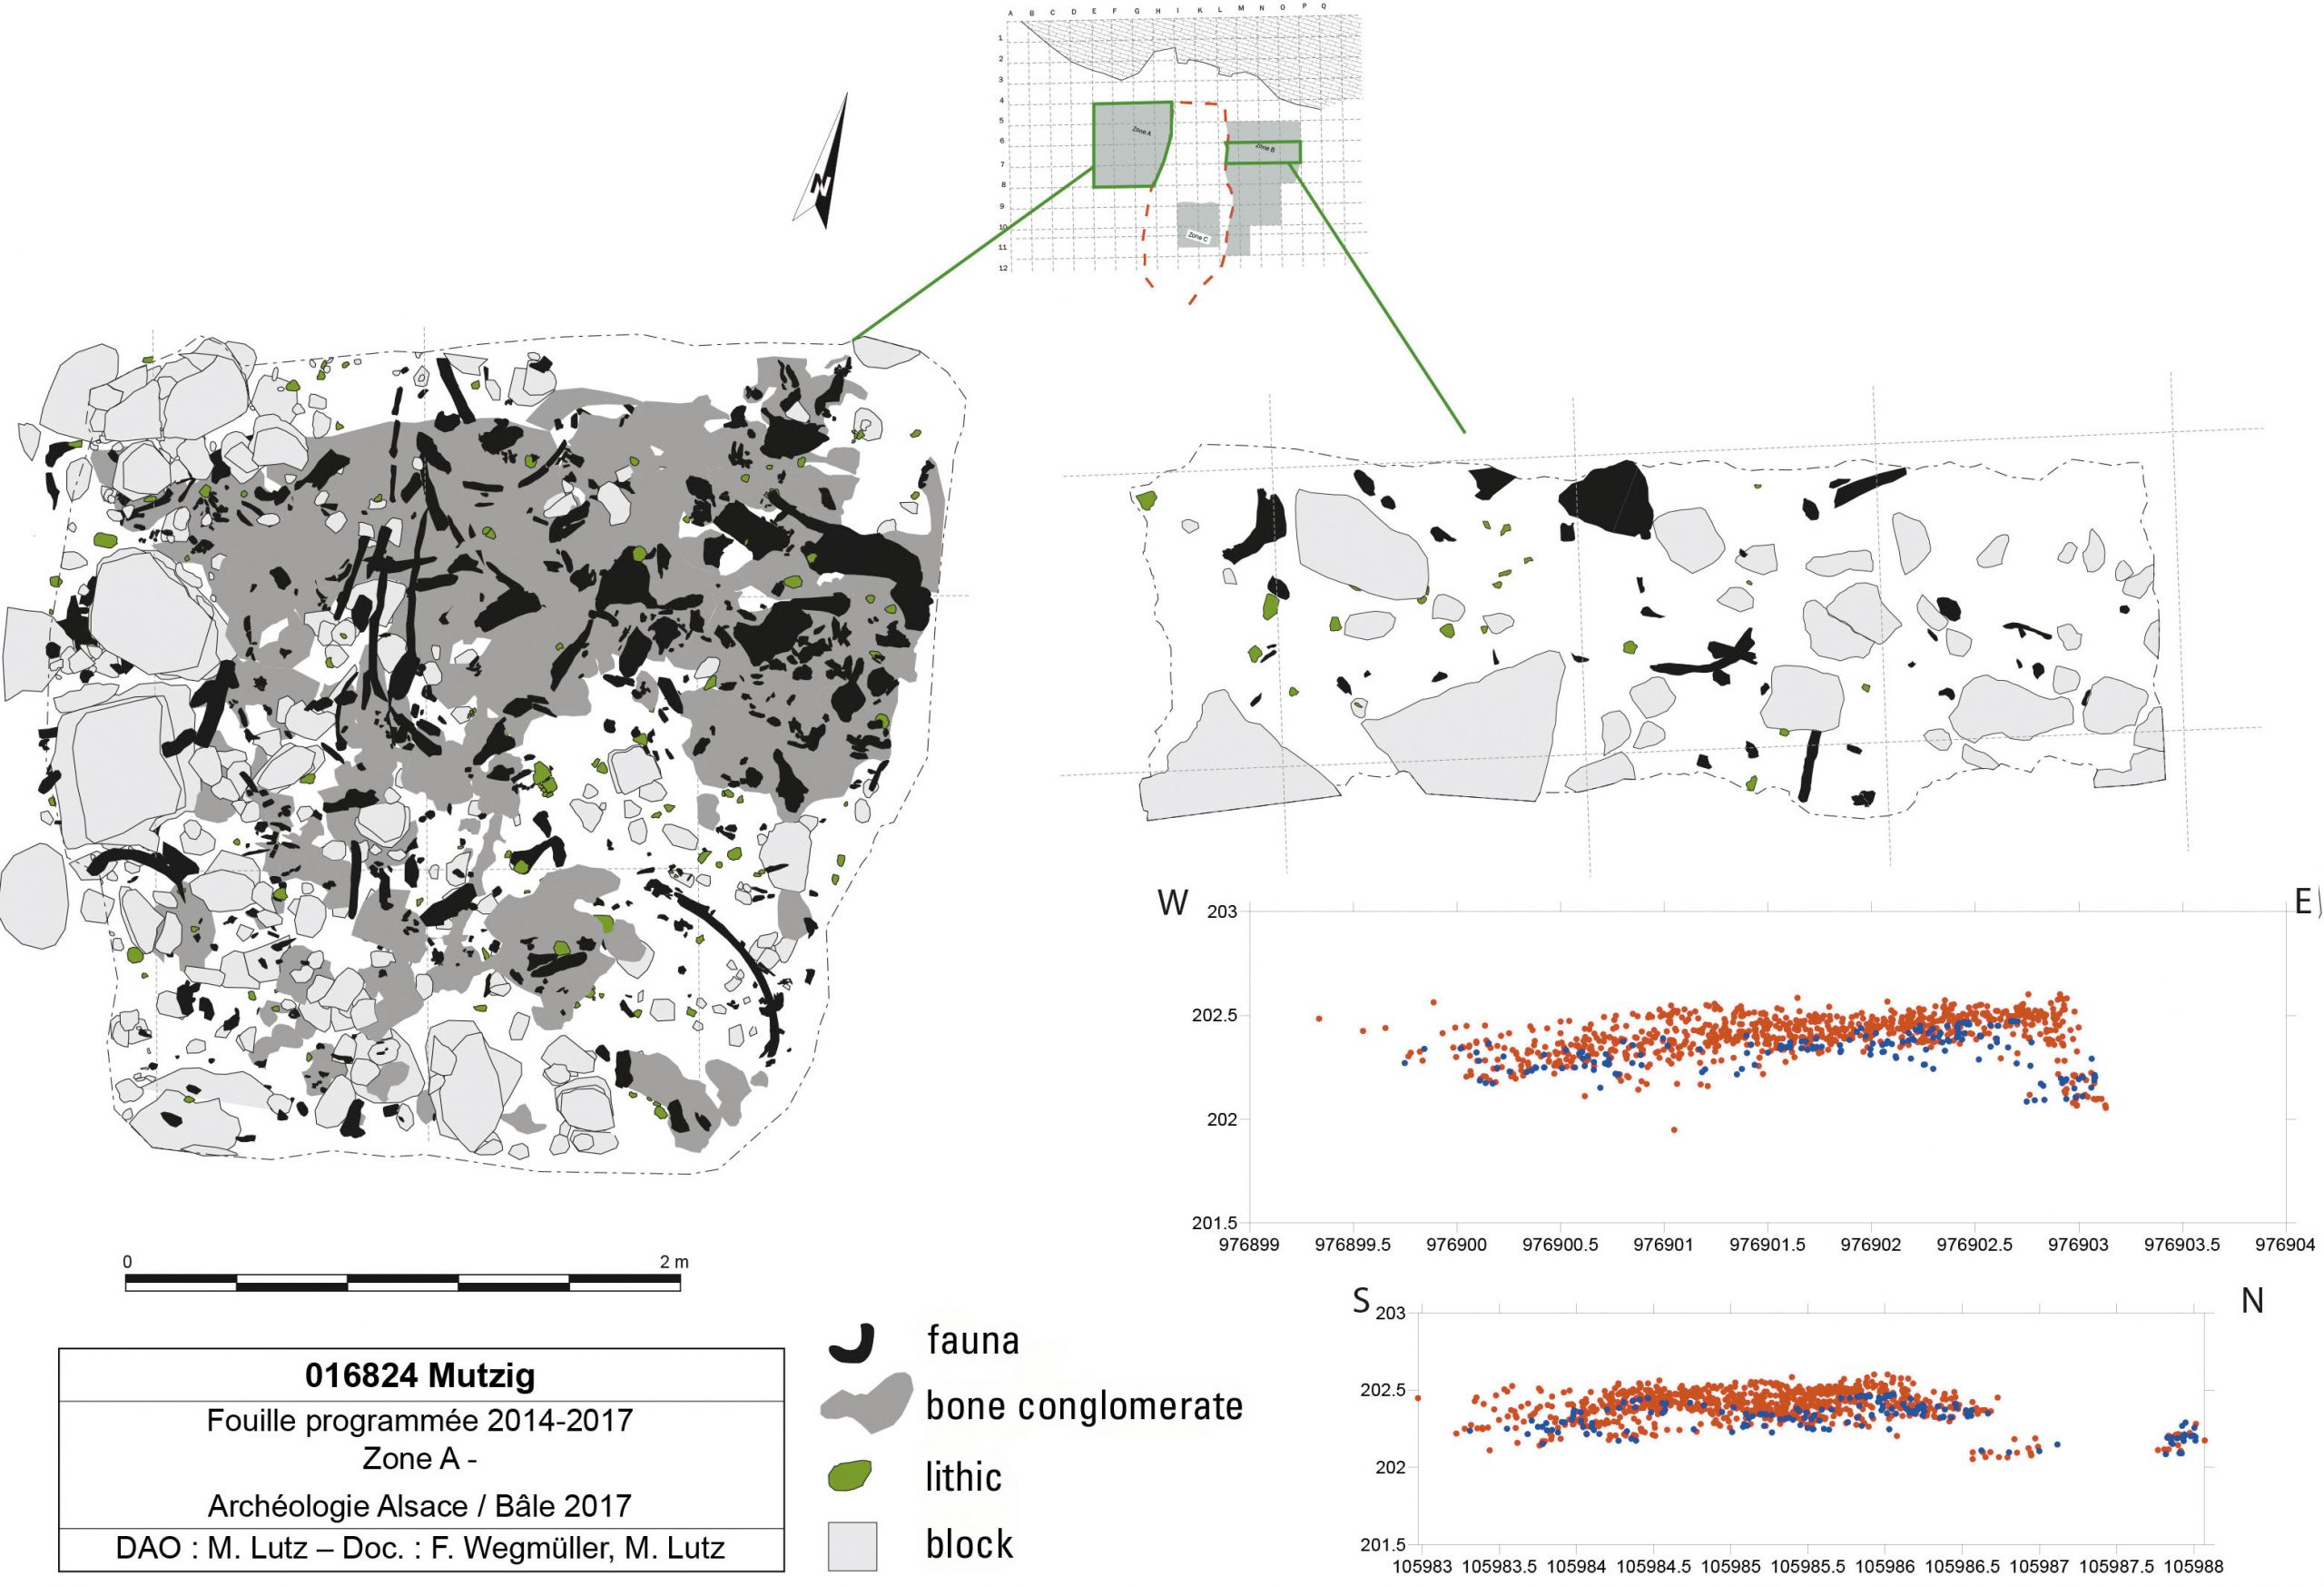 Spatial distribution of remains in Layer 7A